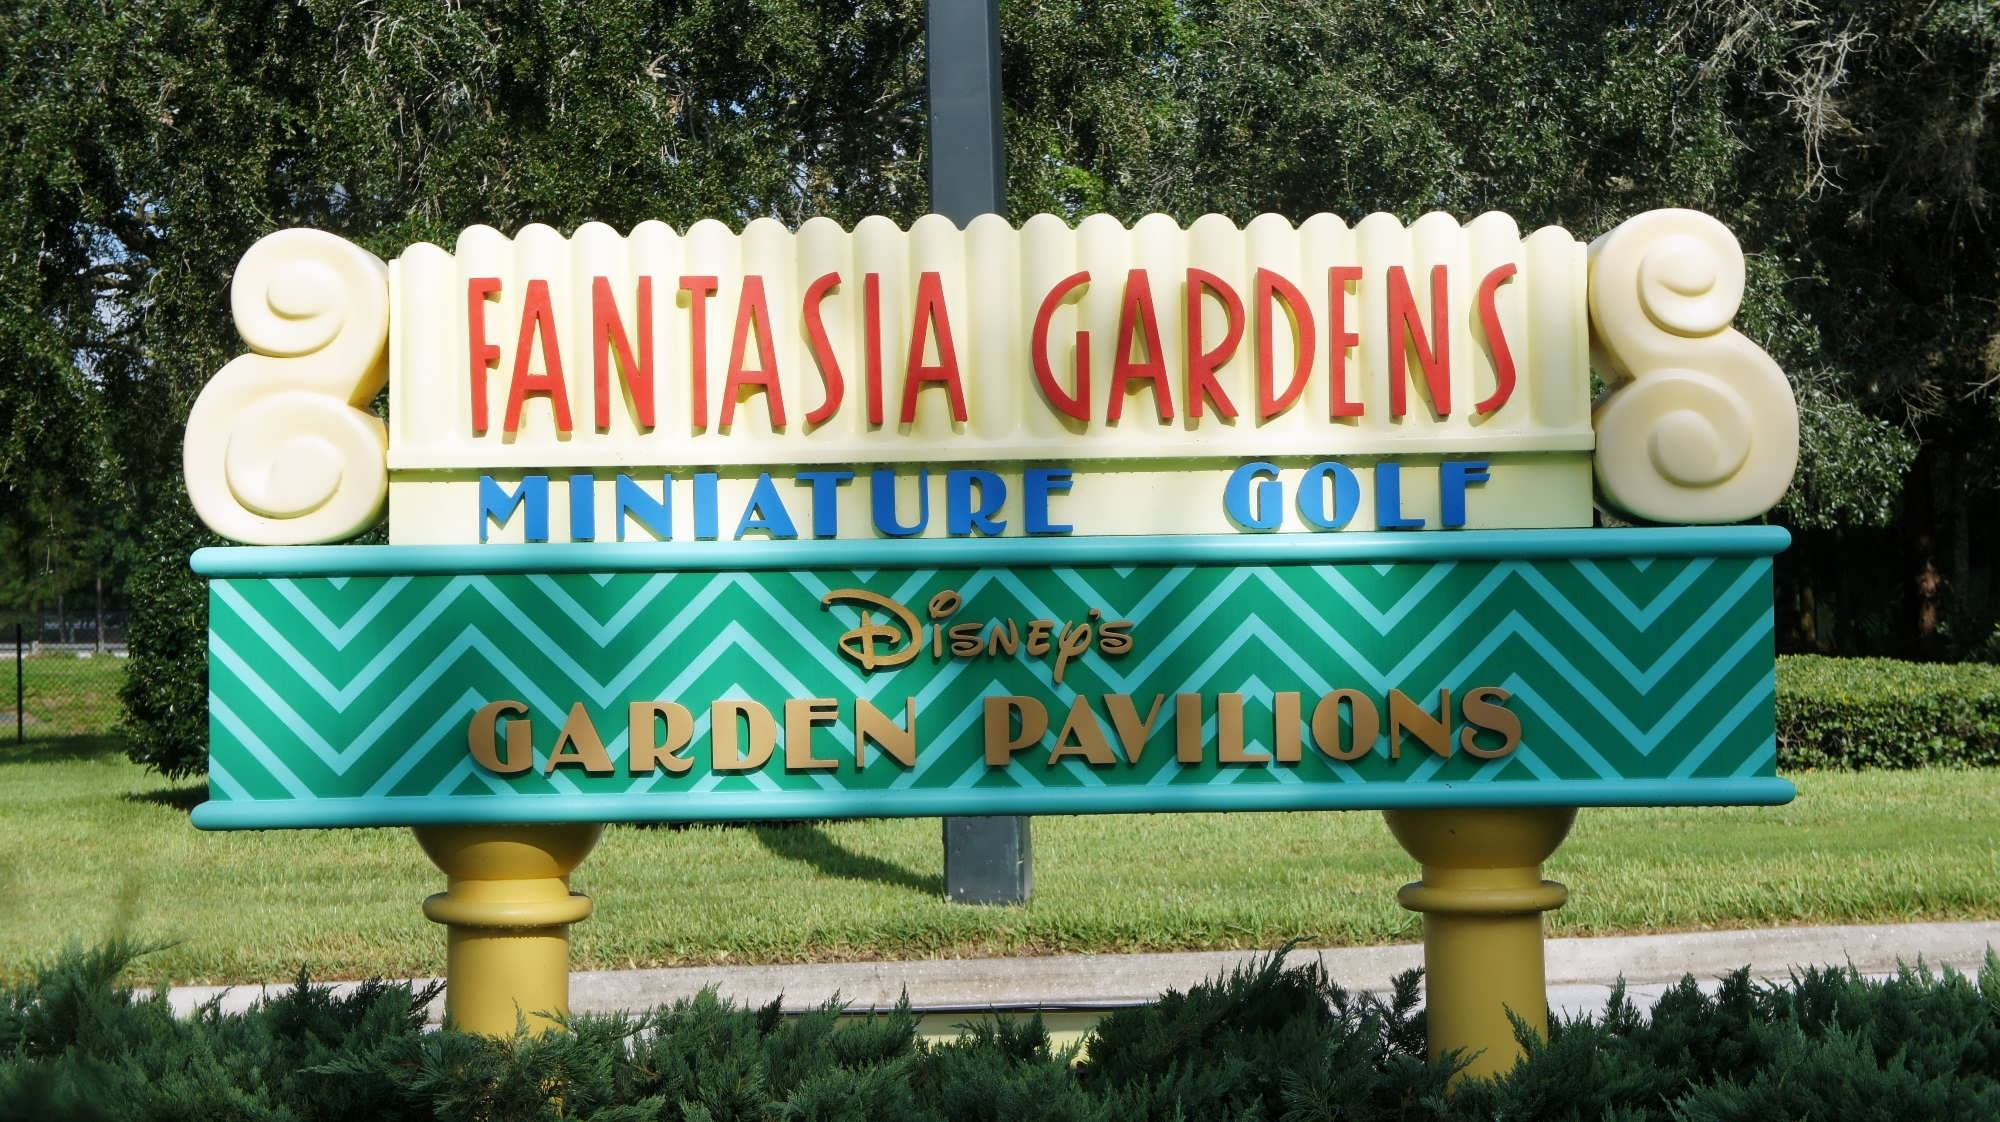 Fantasia Gardens Closed Today, October 27th.